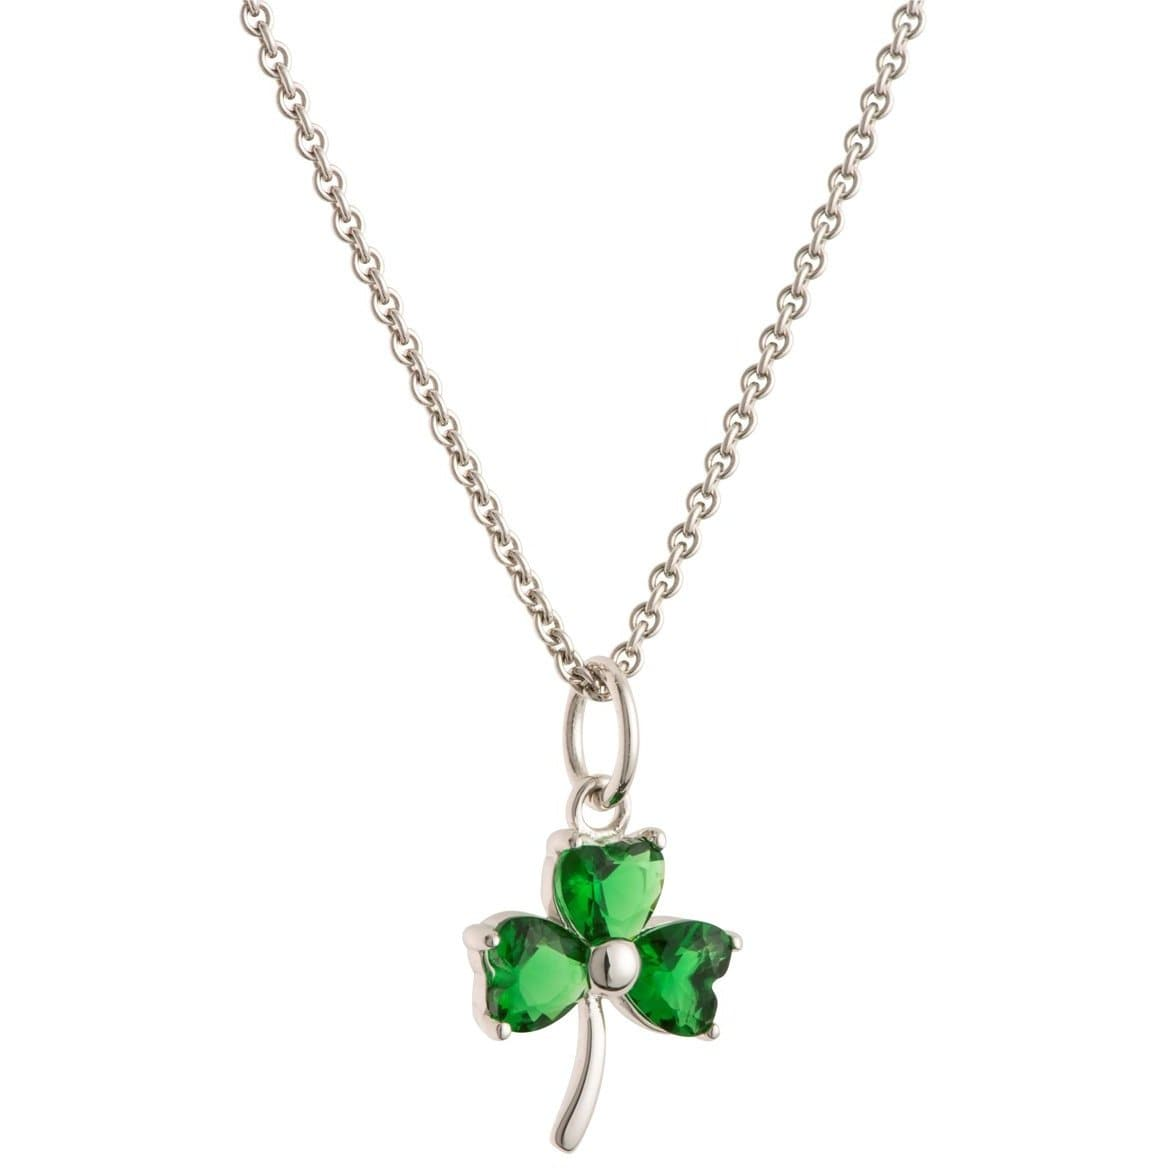 Shamrock Green Crystal Sterling Silver Pendant G8108 - Galway Irish Crystal